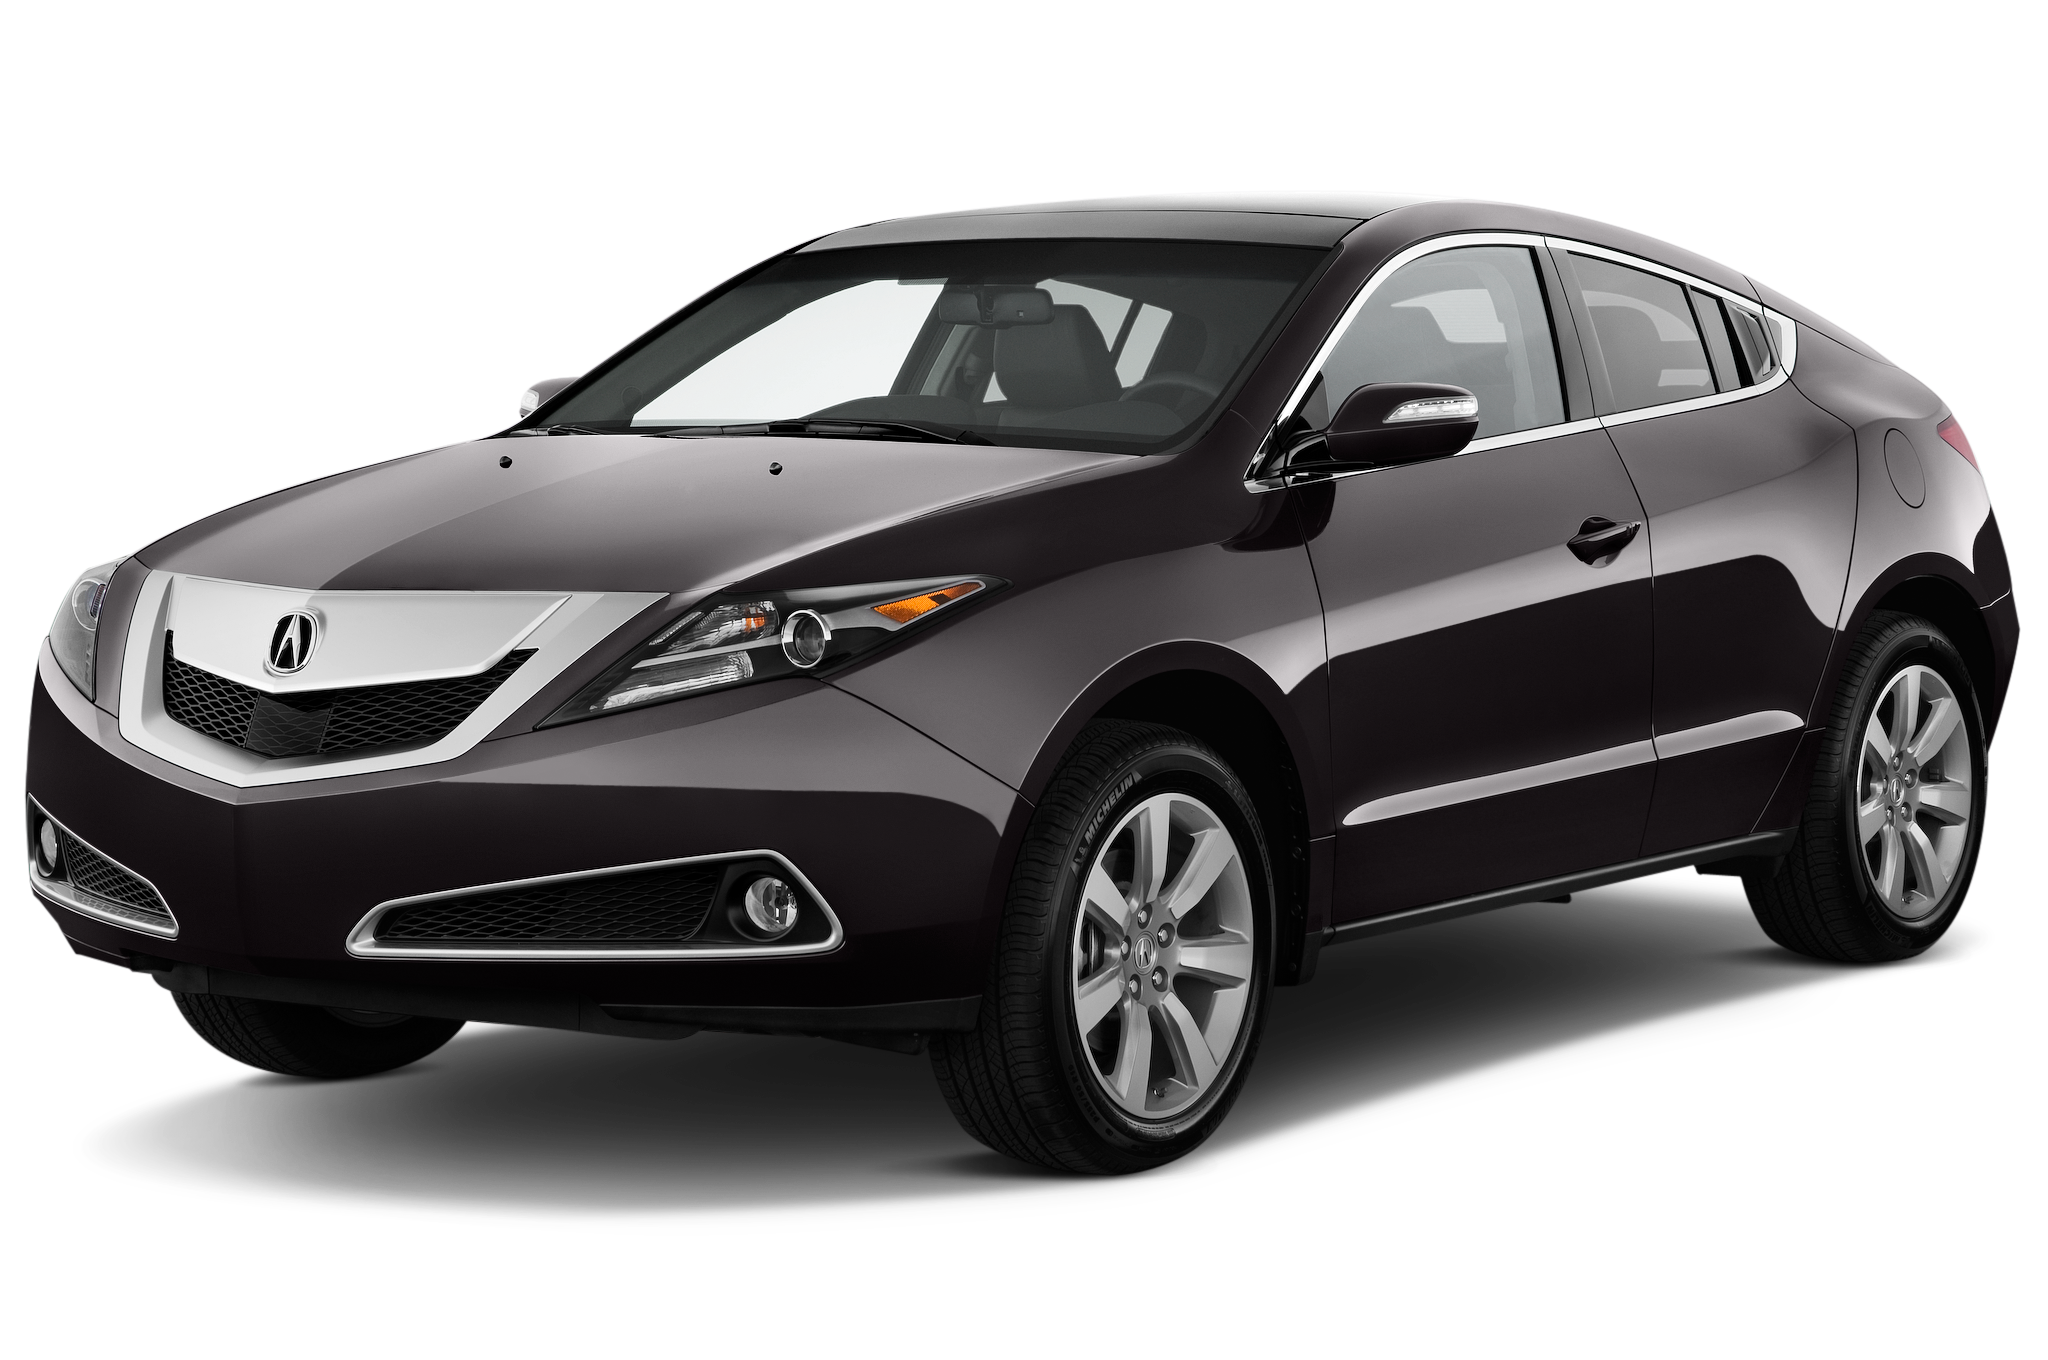 2010 acura zdx crossover revealed. Black Bedroom Furniture Sets. Home Design Ideas